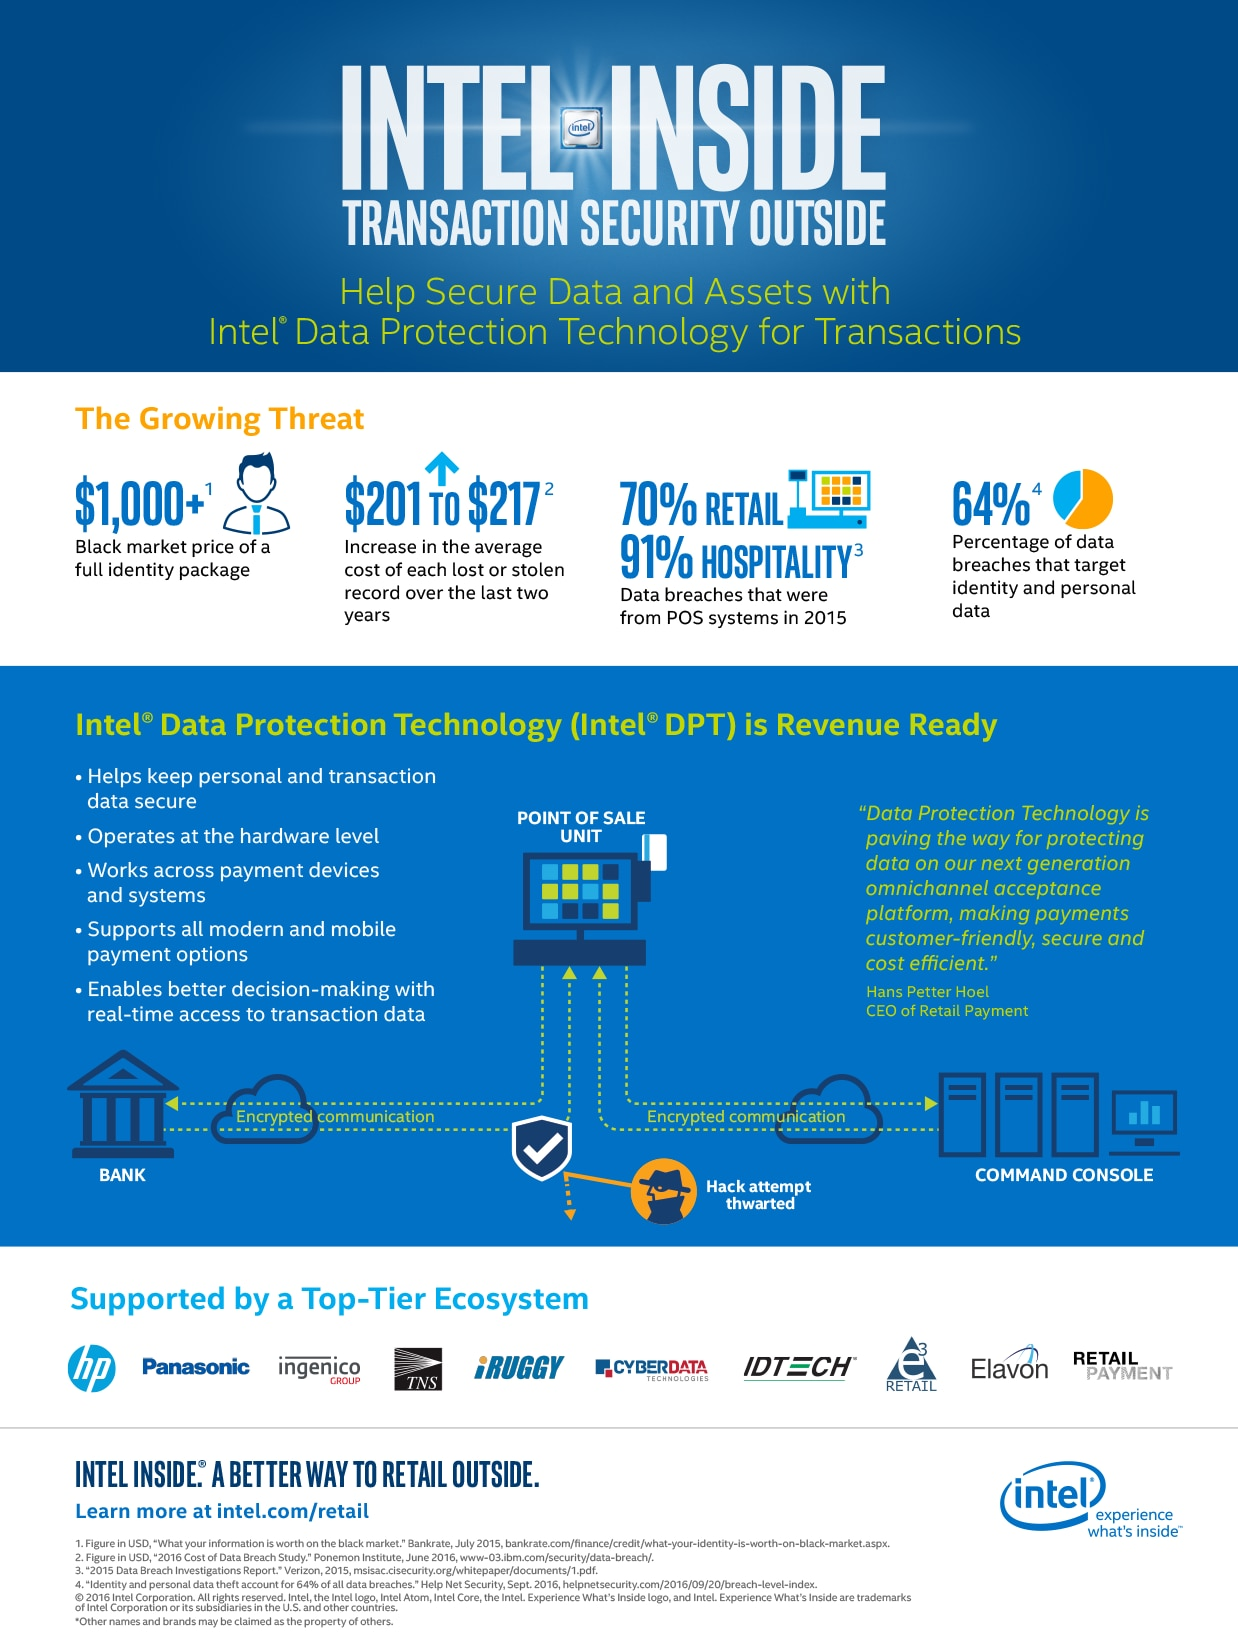 Intel® Data Protection Technology Secures Transactional Data